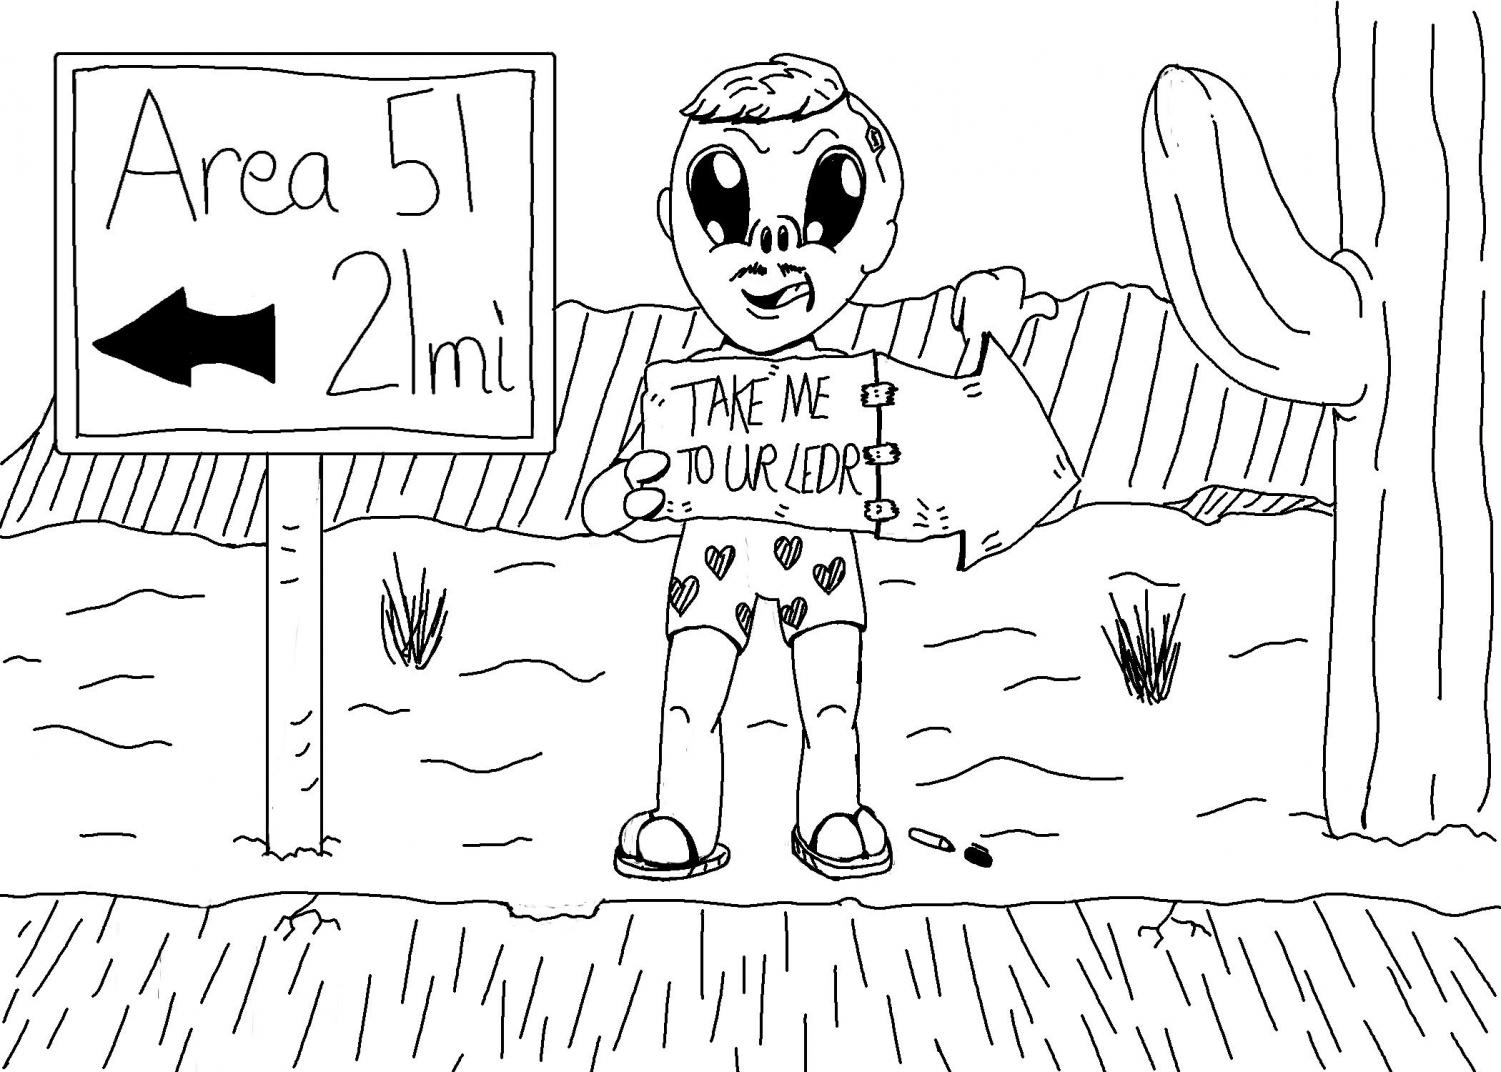 Drawing of a pictured alien in a disguise hitchhiking close to Area 51.